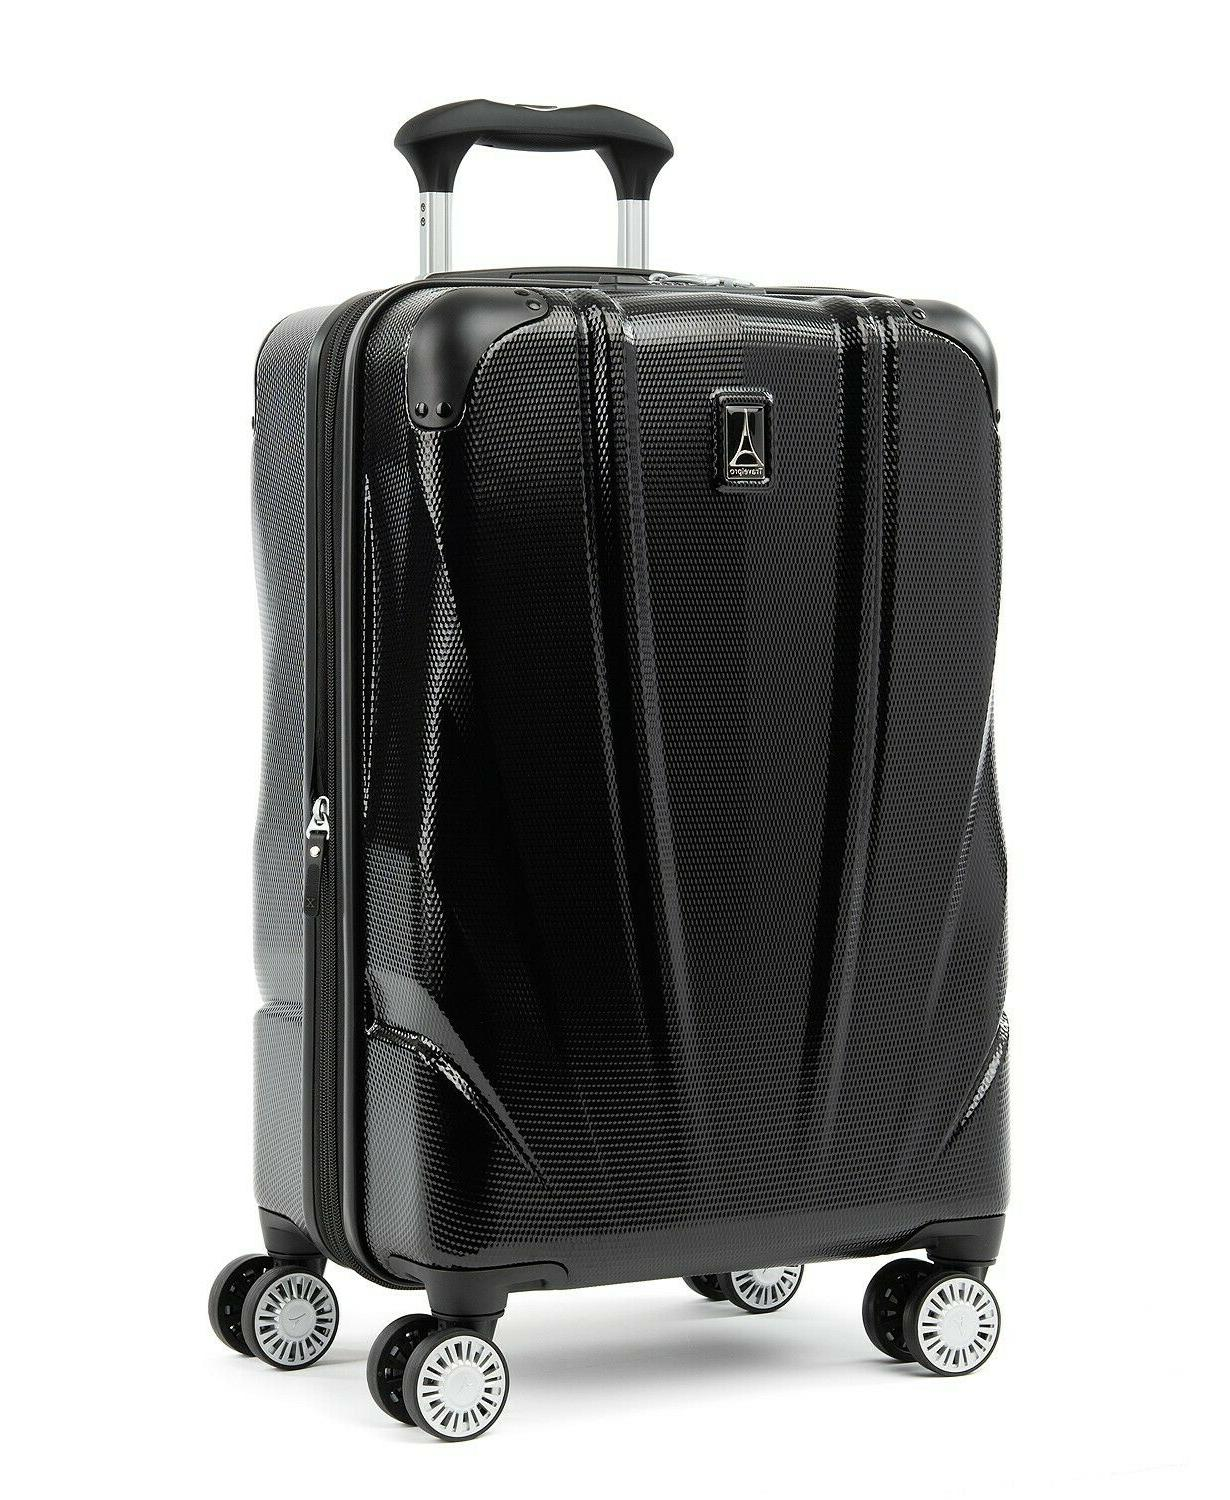 """Travelpro Pathways 2.0 21"""" Hardside Carry-on Luggage Spinner"""